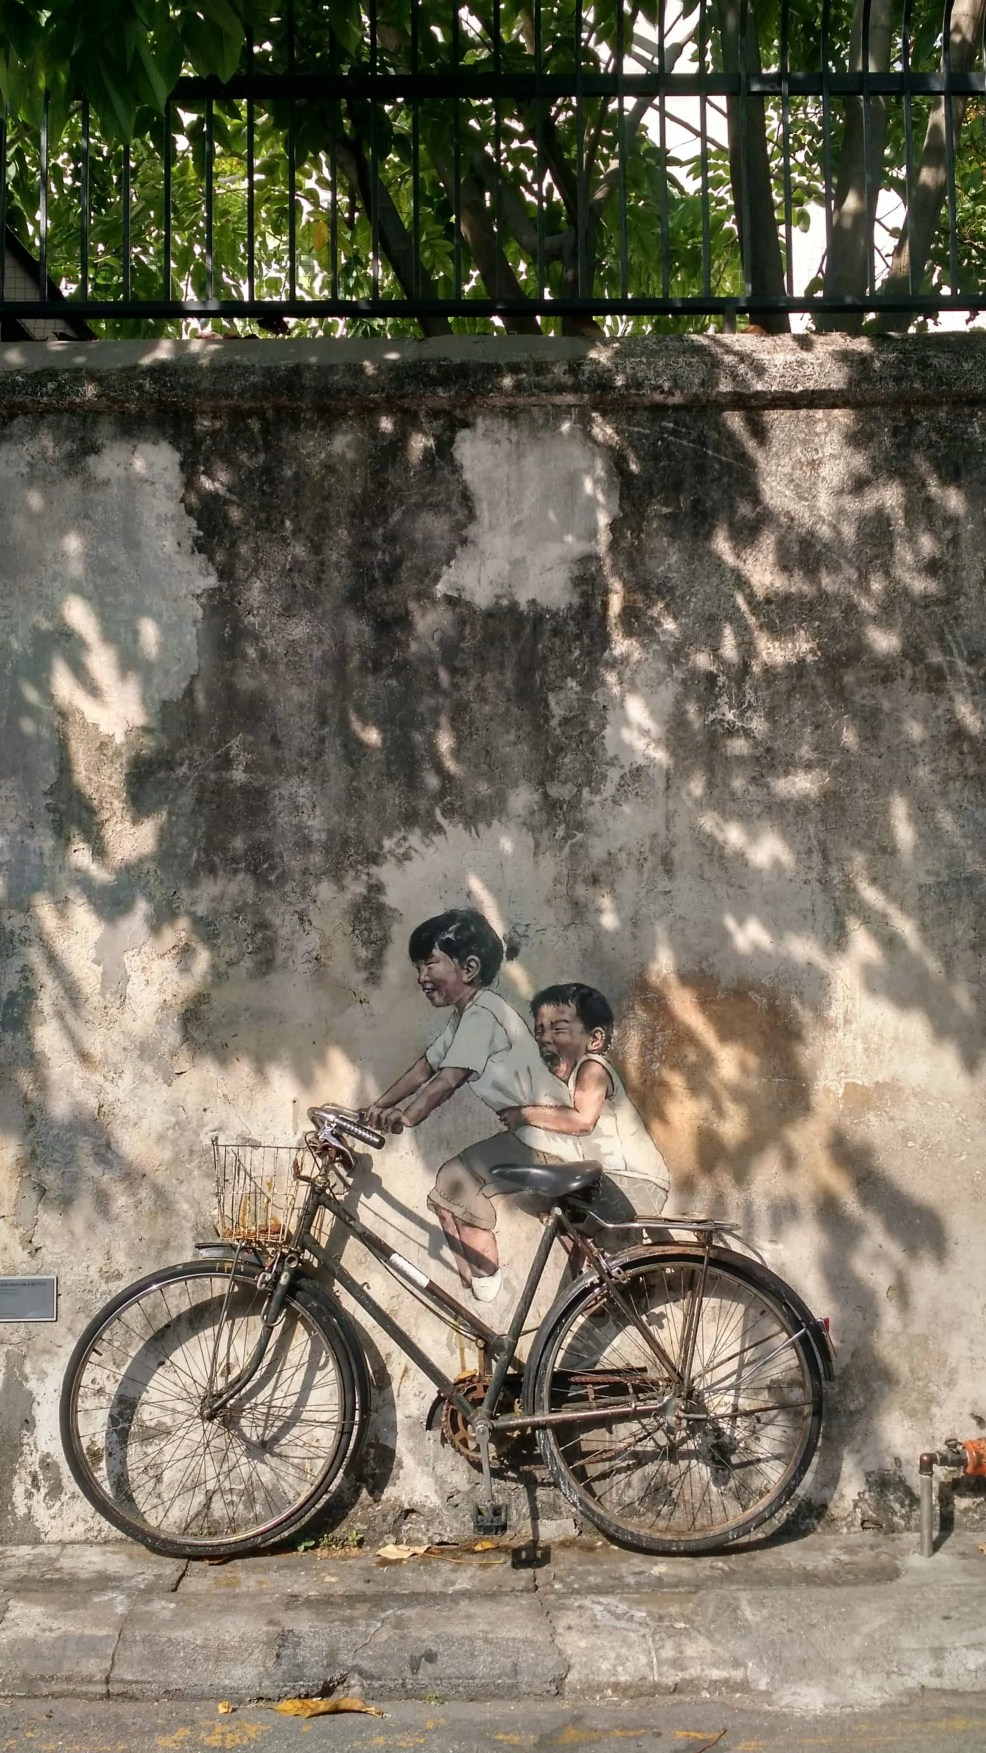 Instagrammable places in Malaysia, Penang, street art in Penang